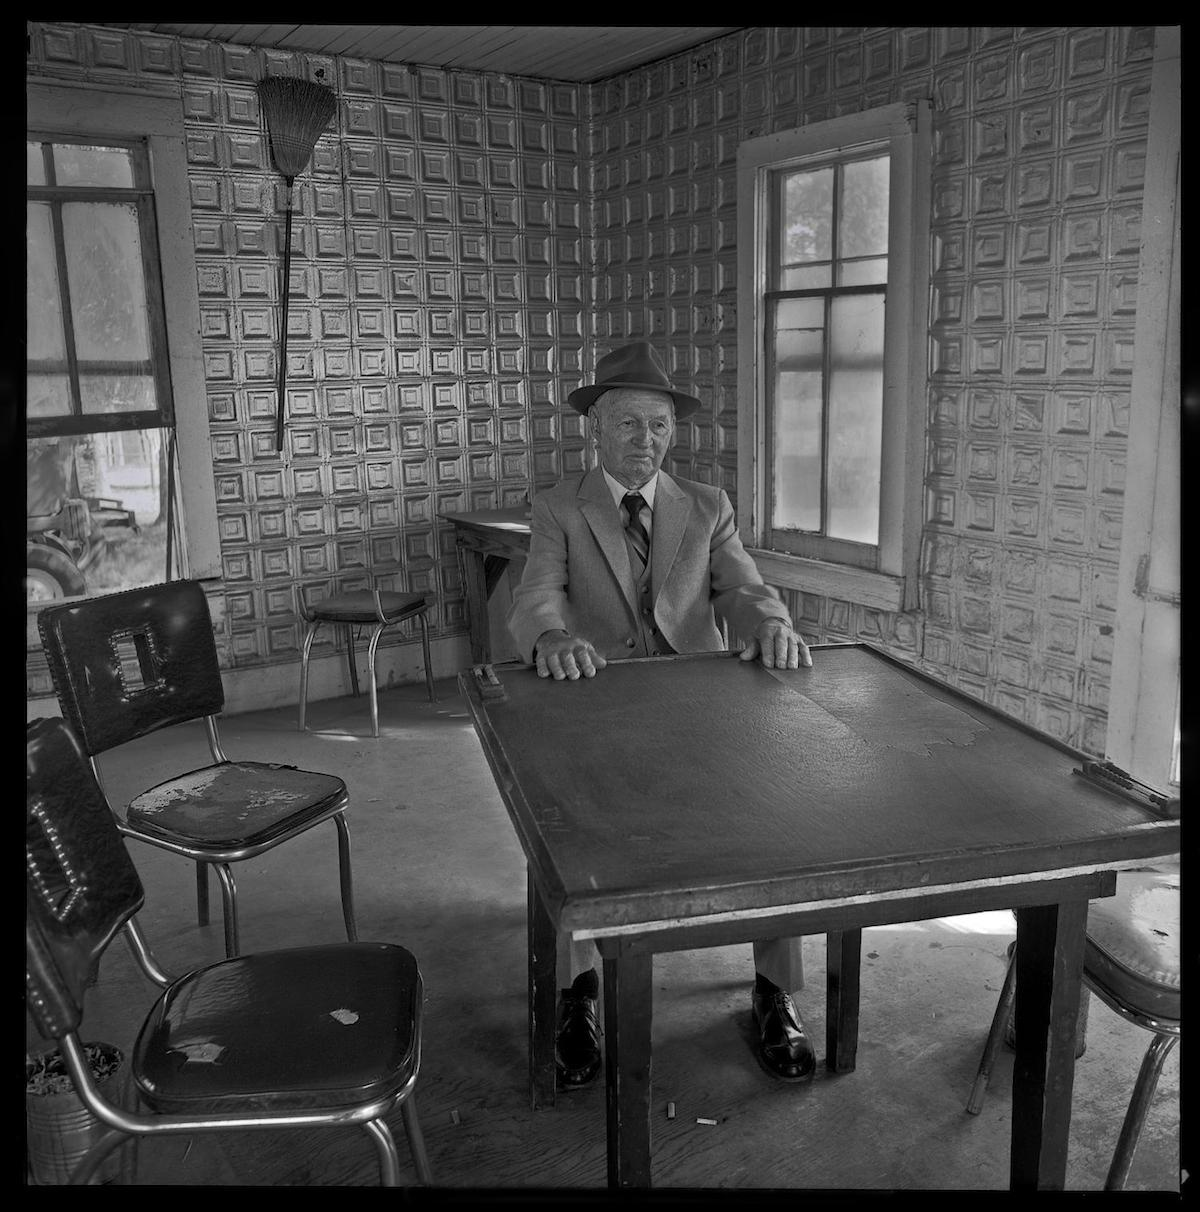 Photograph of a man sitting at a table in a domino parlor. DATE: 1985~ CREATOR: Williams, Byrd M. (Byrd Moore), IV, 1951-